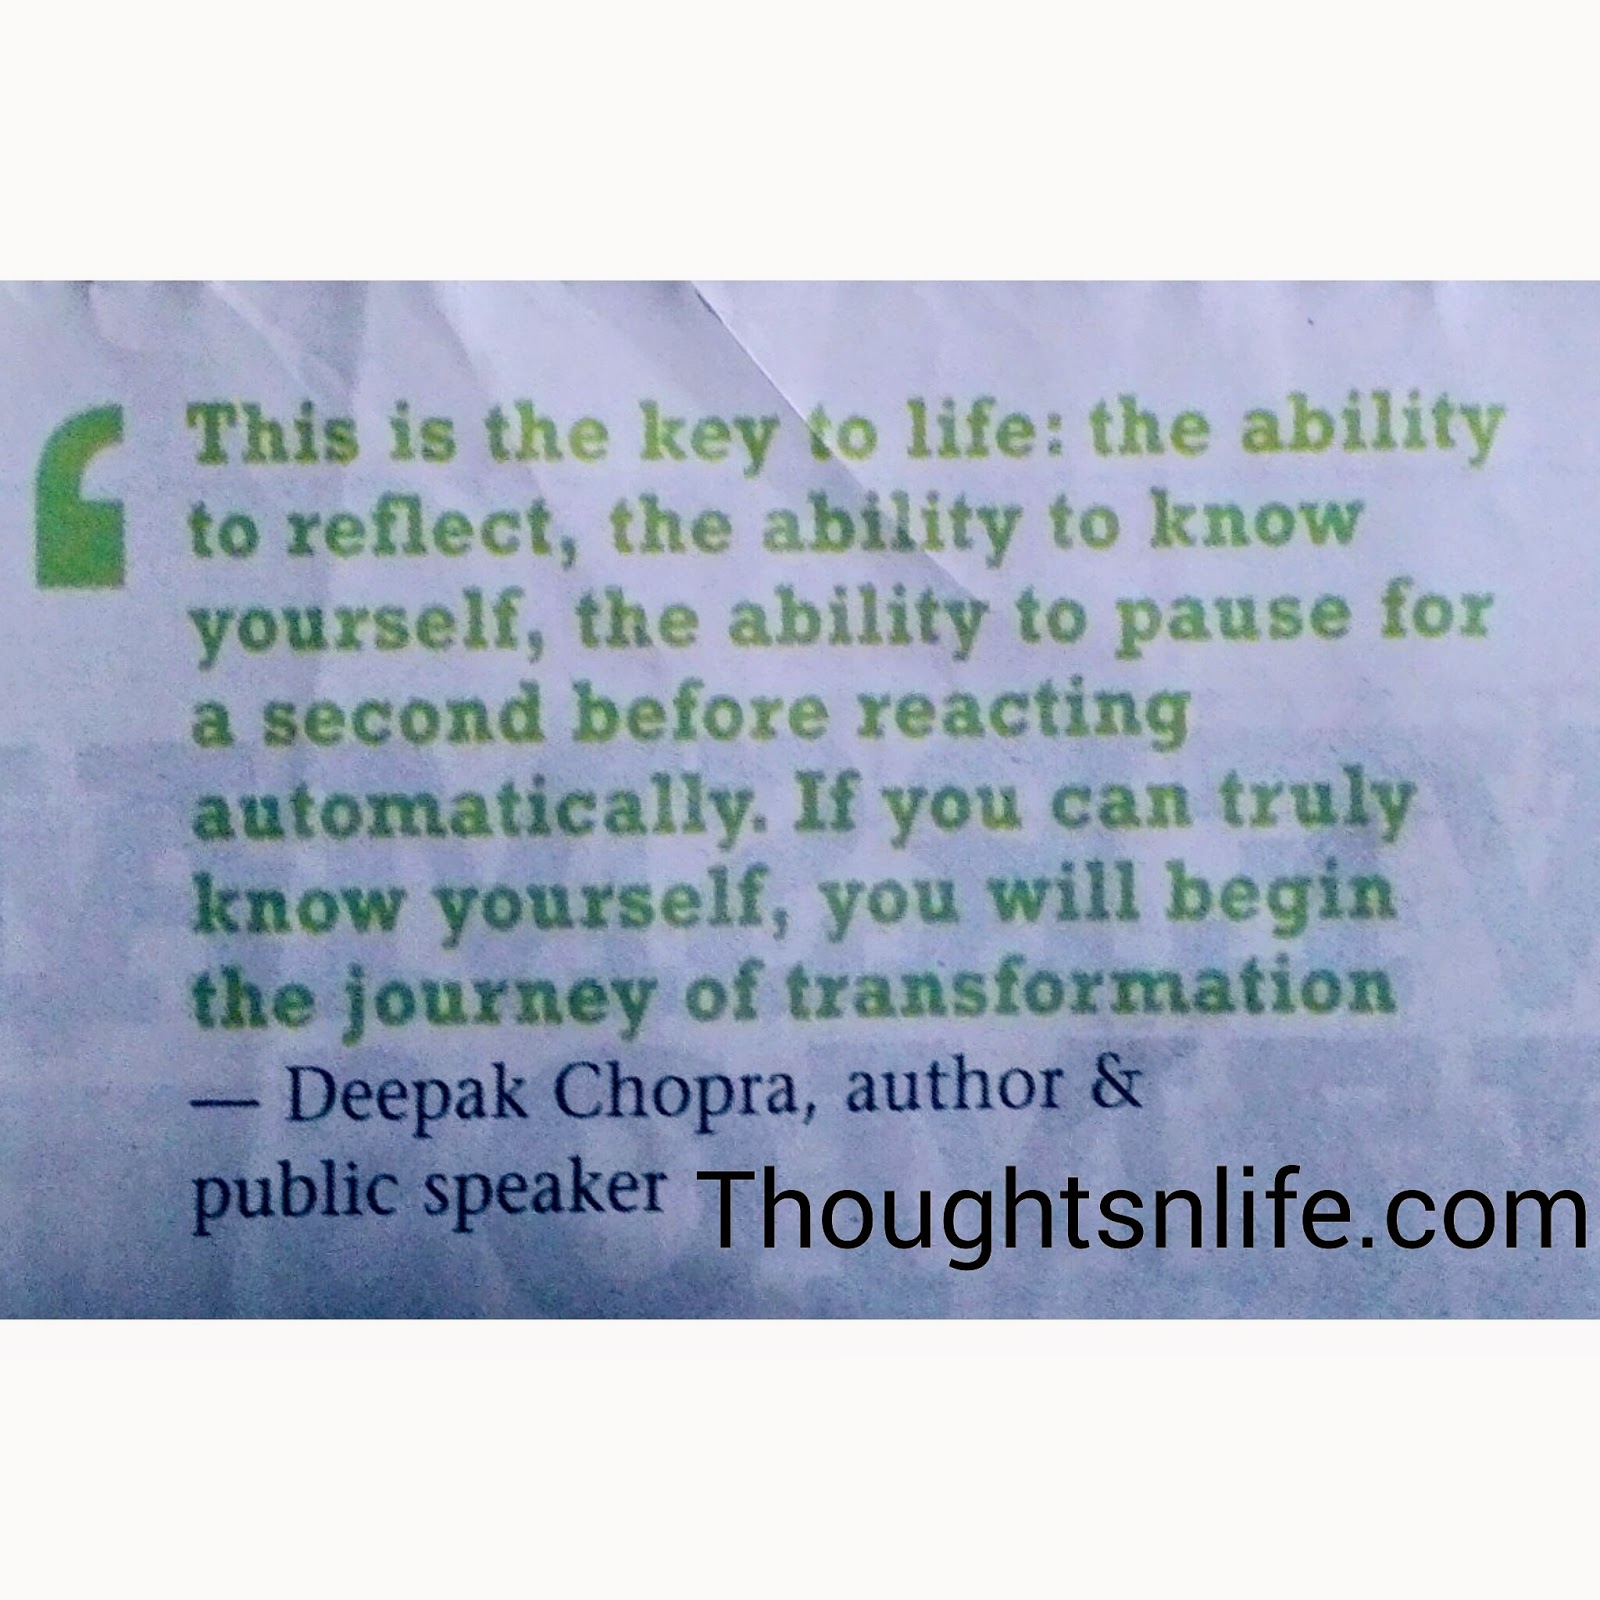 This is the key to life, deepak-chopra. Know-yourself-journey-of-transformation-awakening-wisdom-quotes